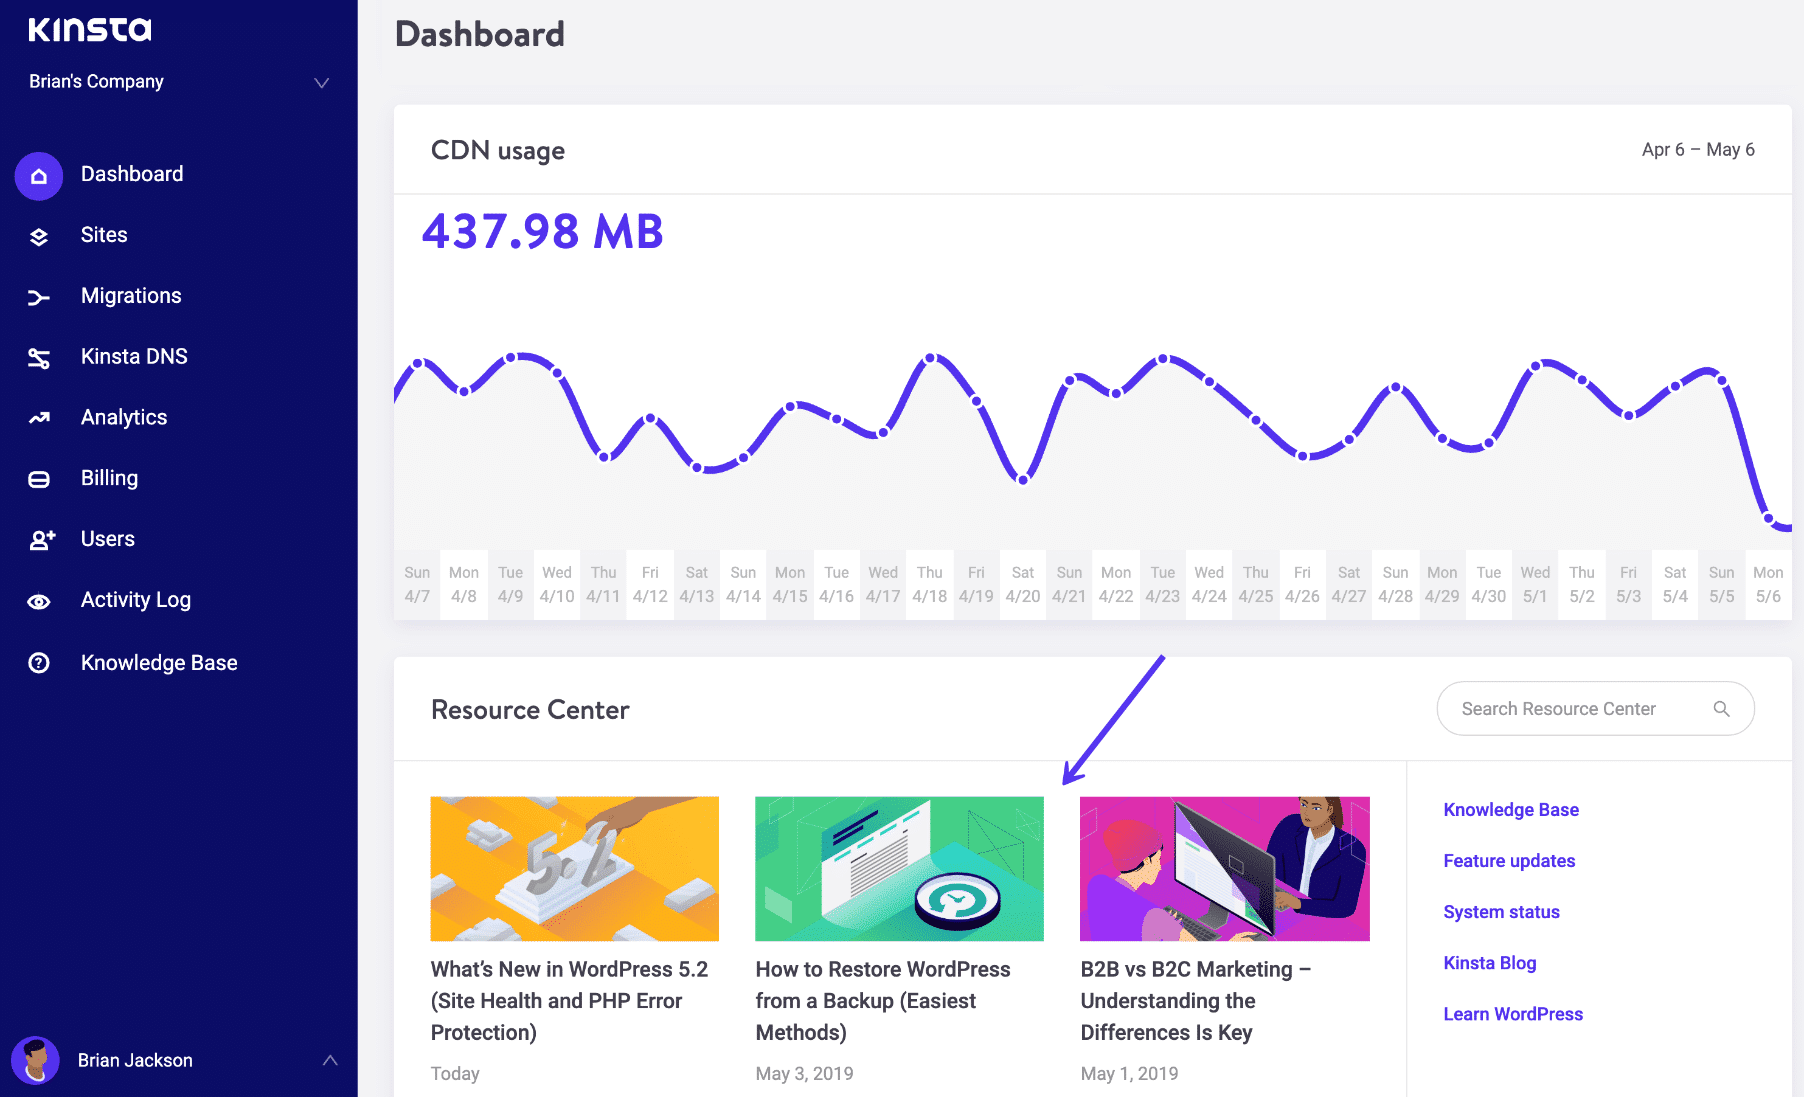 MyKinsta Resource Center